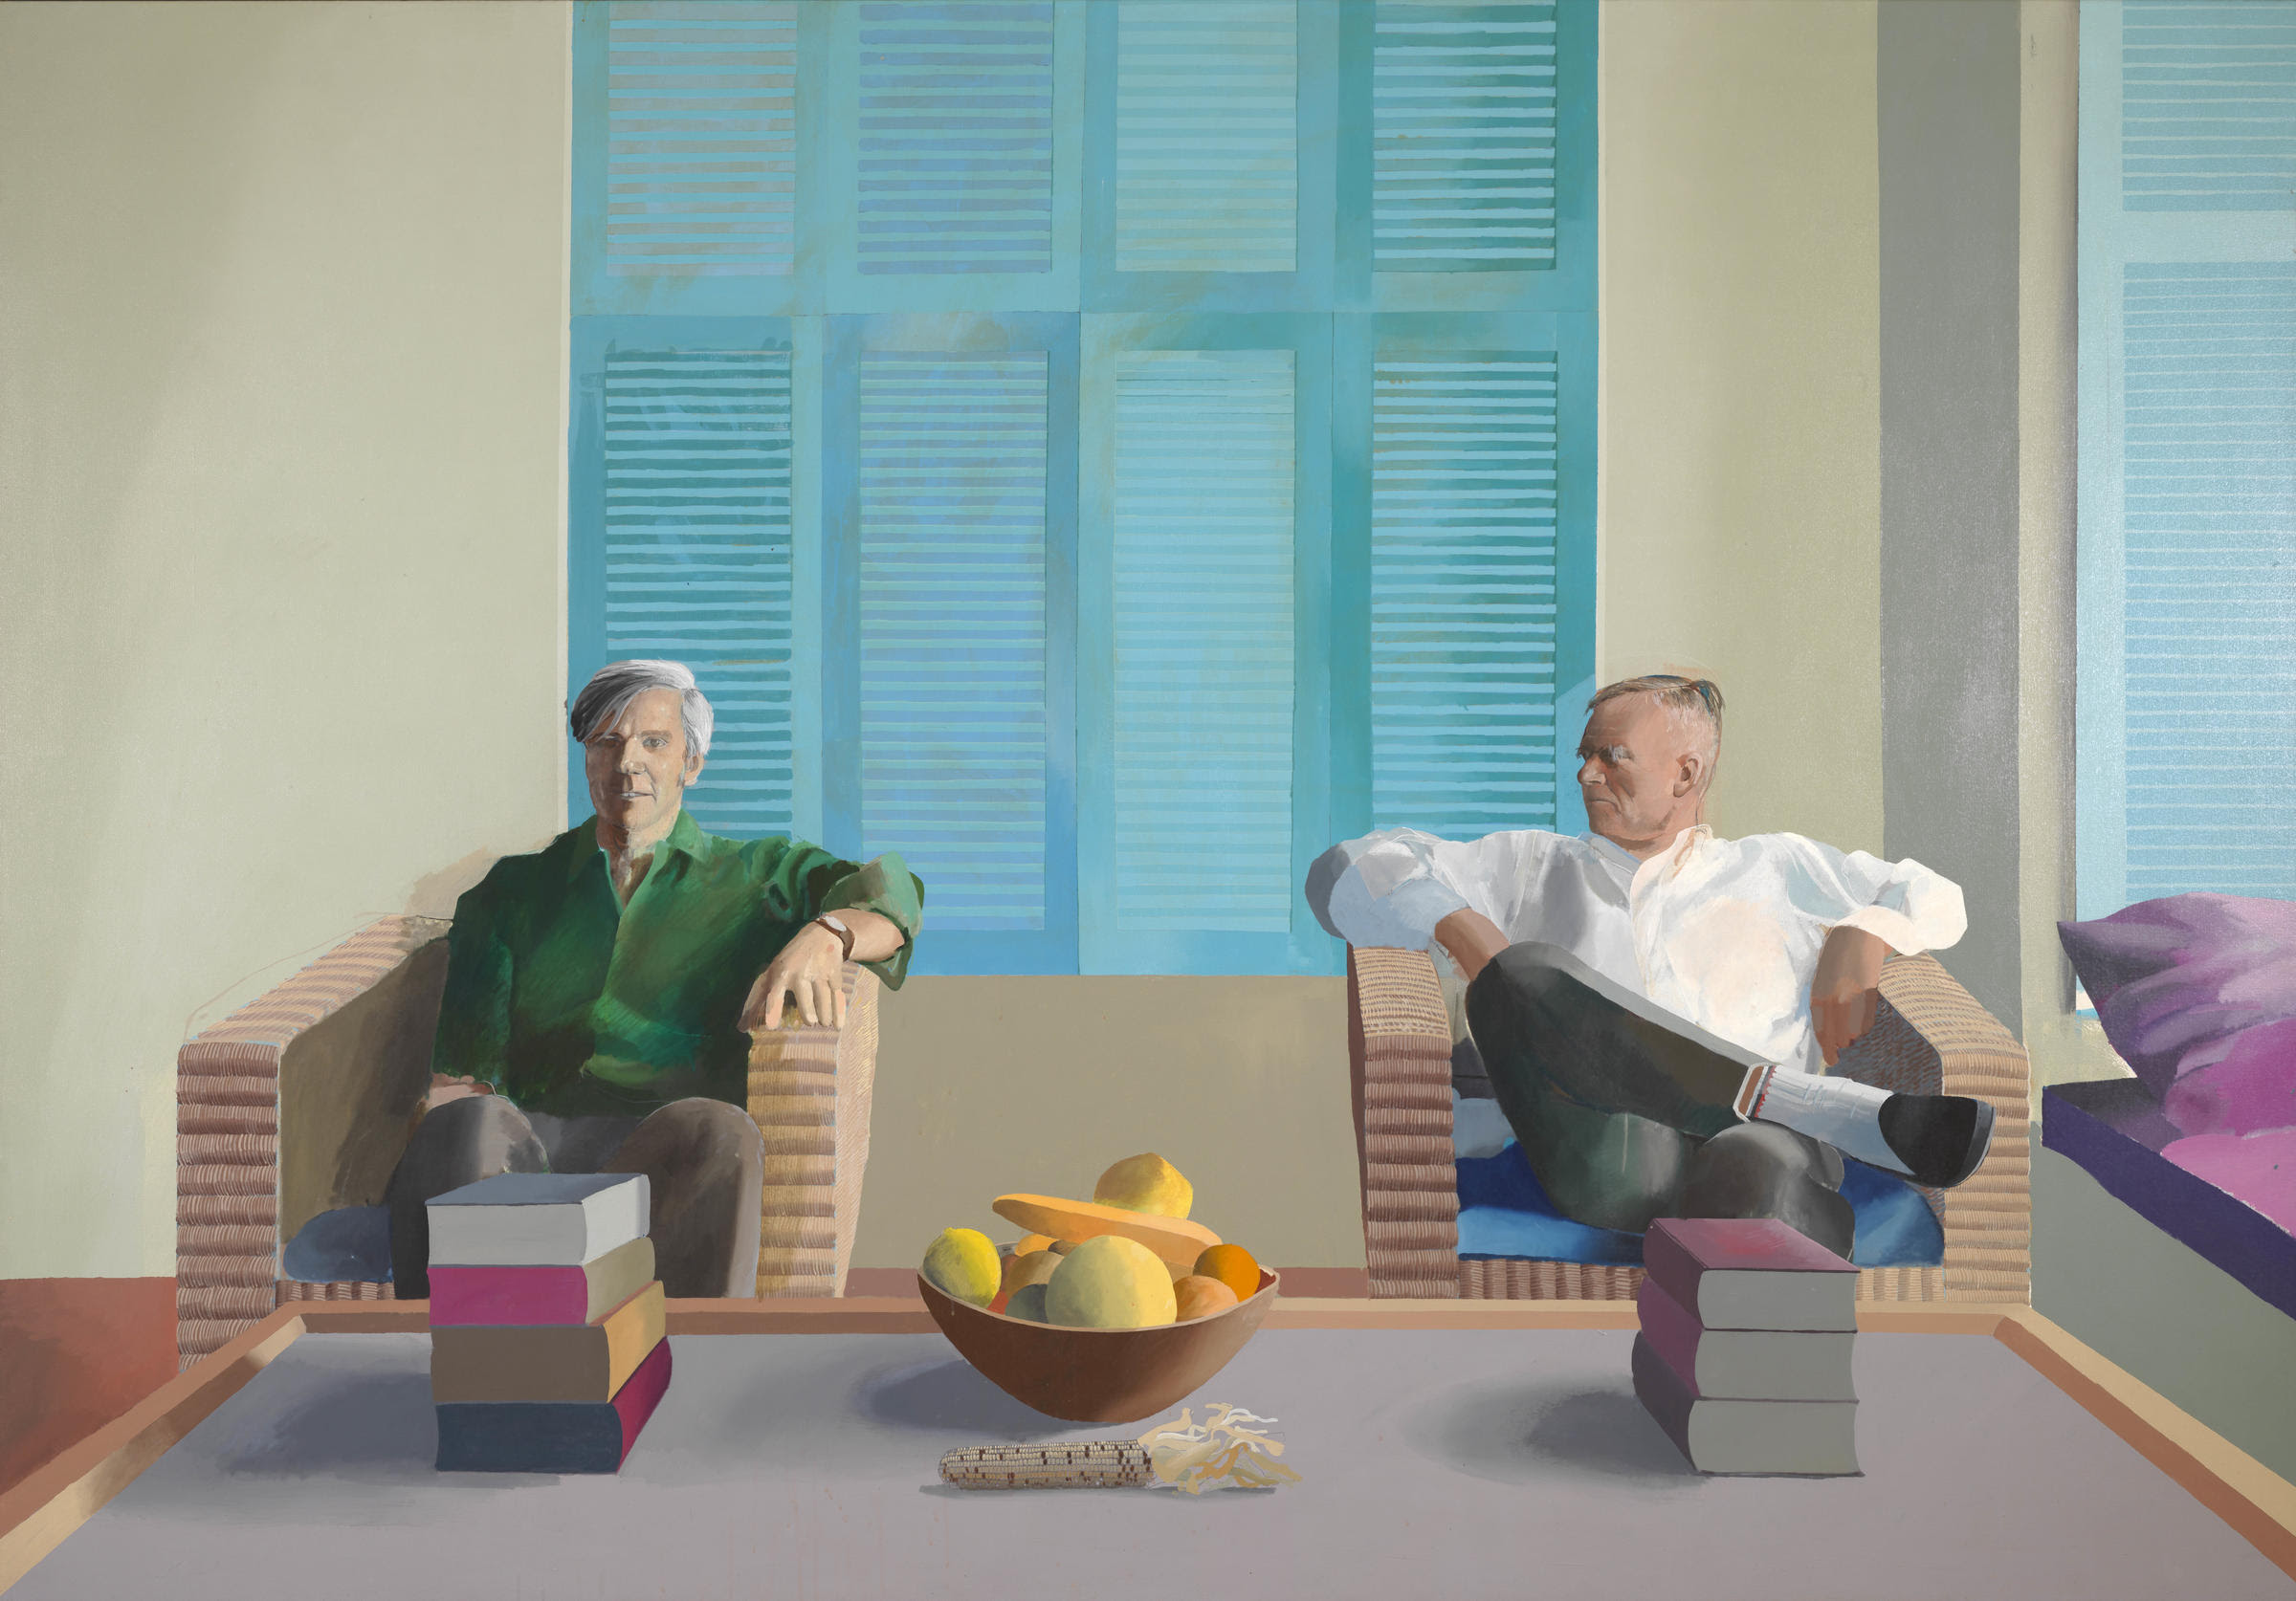 At 79, David Hockney Isn't Keen On Parties, But Still Paints Every Day ...